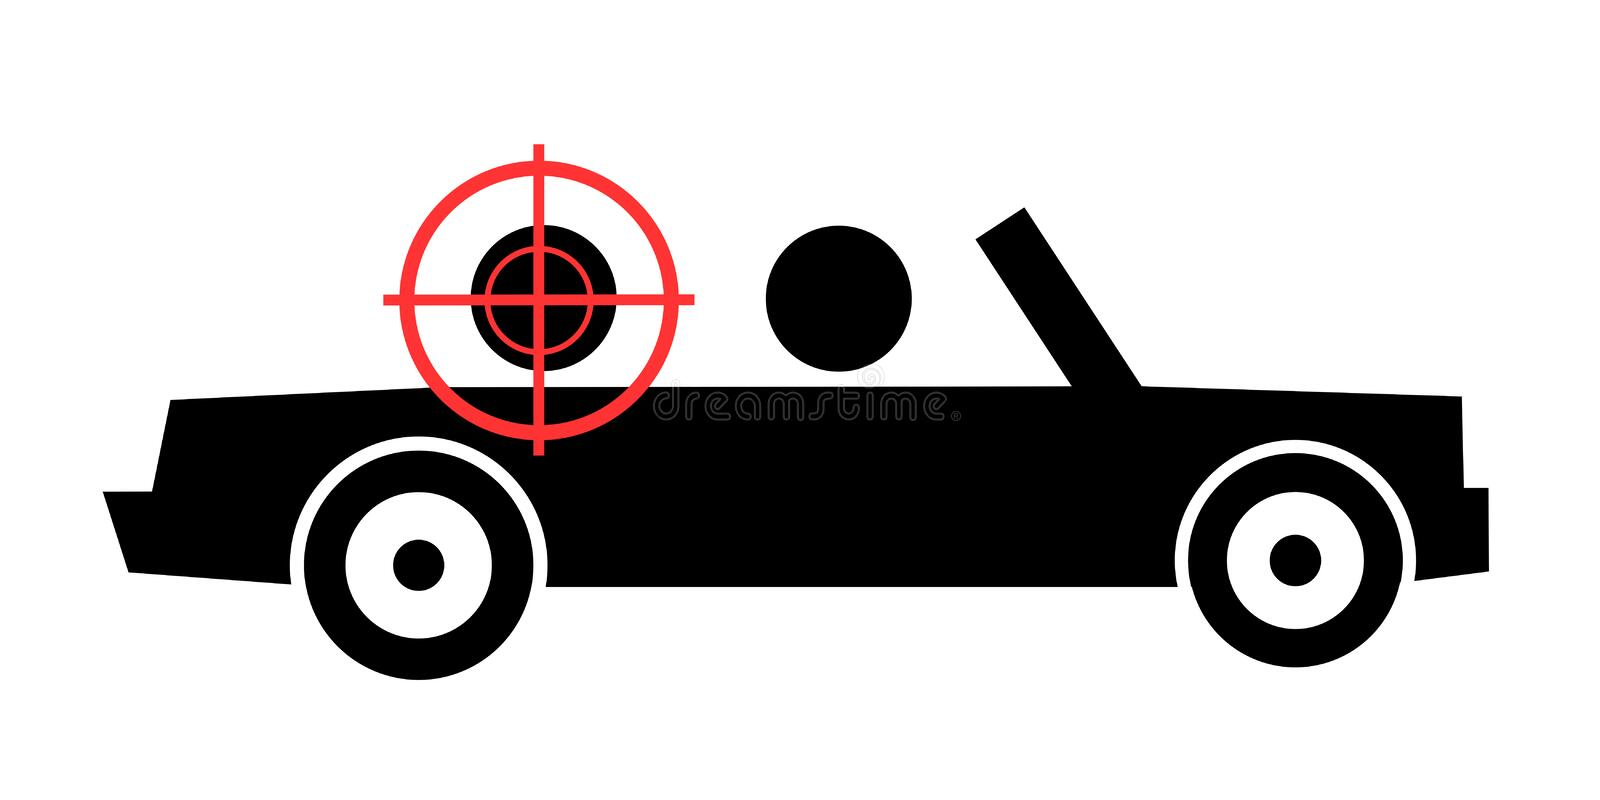 JFK assassination. Person is killed and assassinated in the cabriolet and convertible car by shot from gun. Vector illustration vector illustration